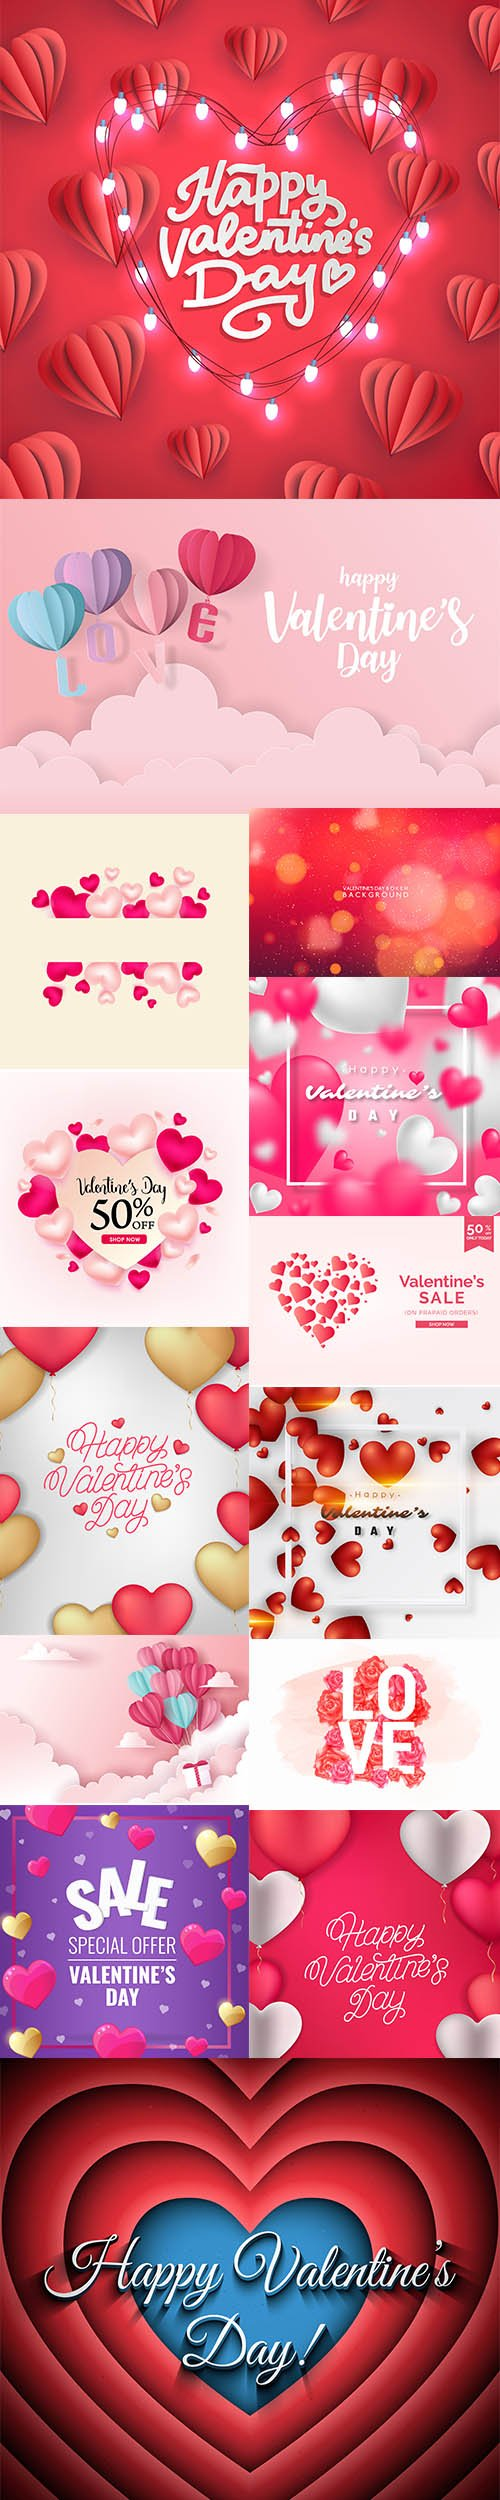 Set of Romantic Valentines Day Illustrations Vol 2